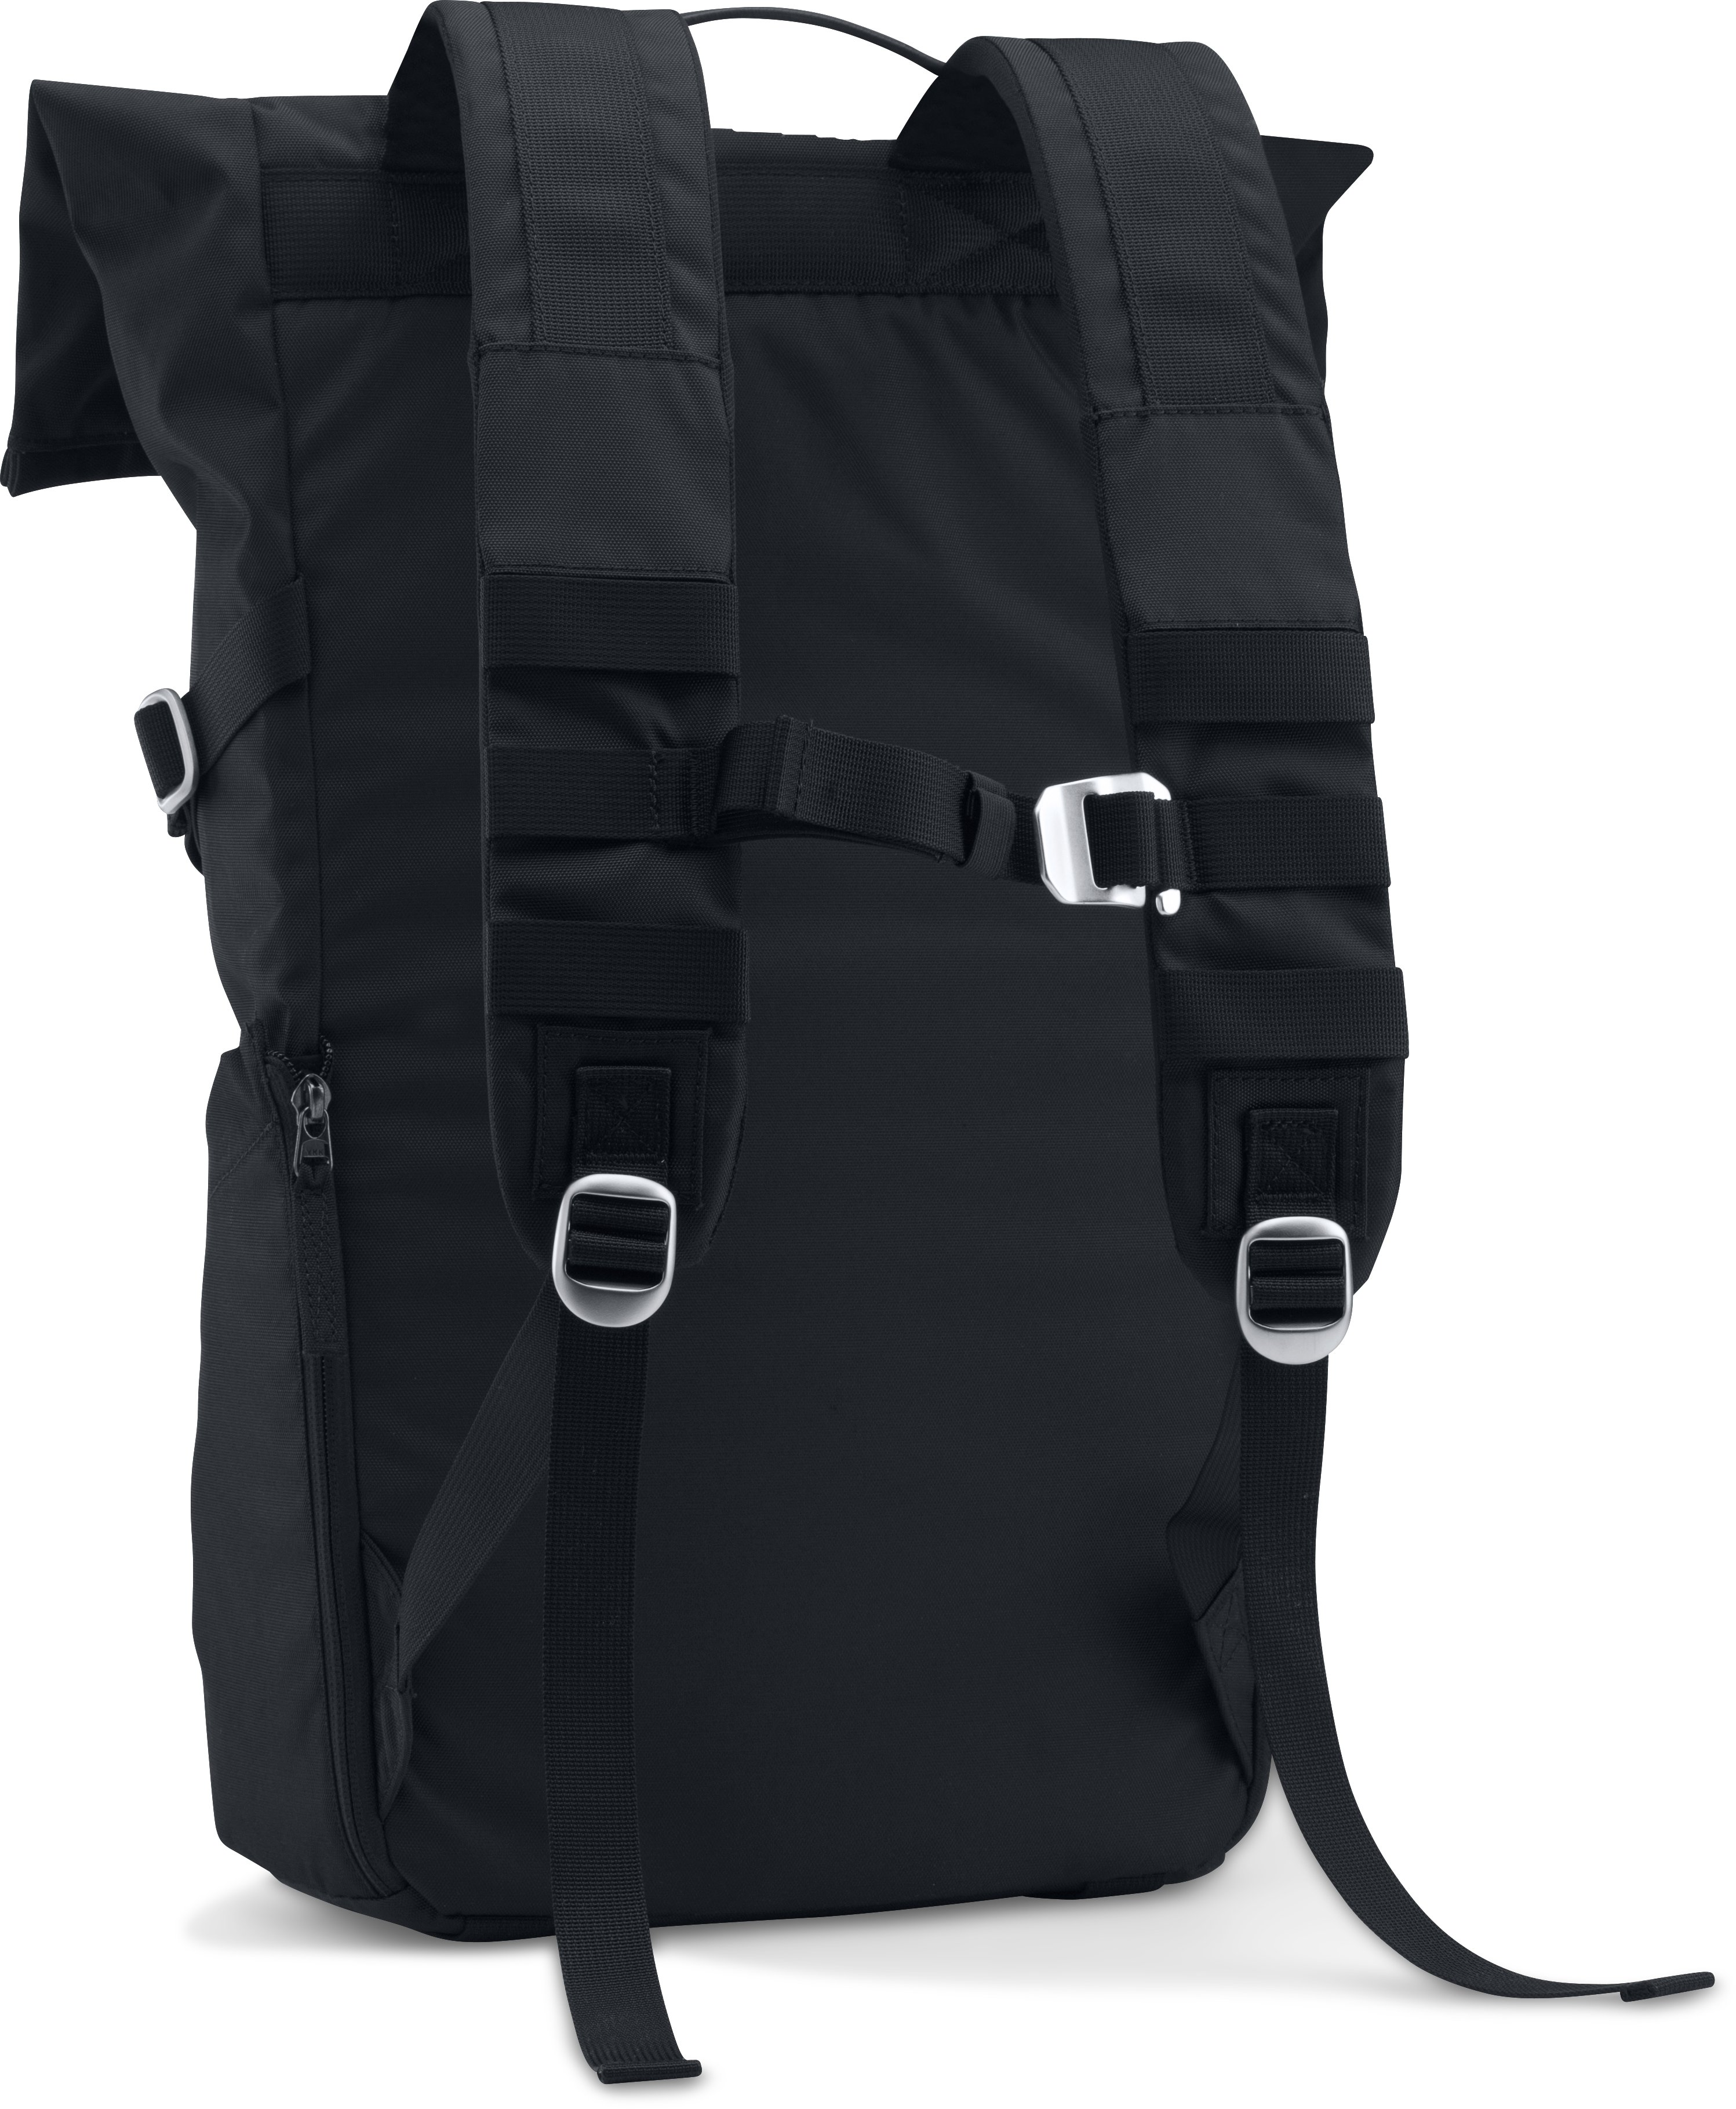 SC30 Signature Rolltop Backpack, Black , undefined